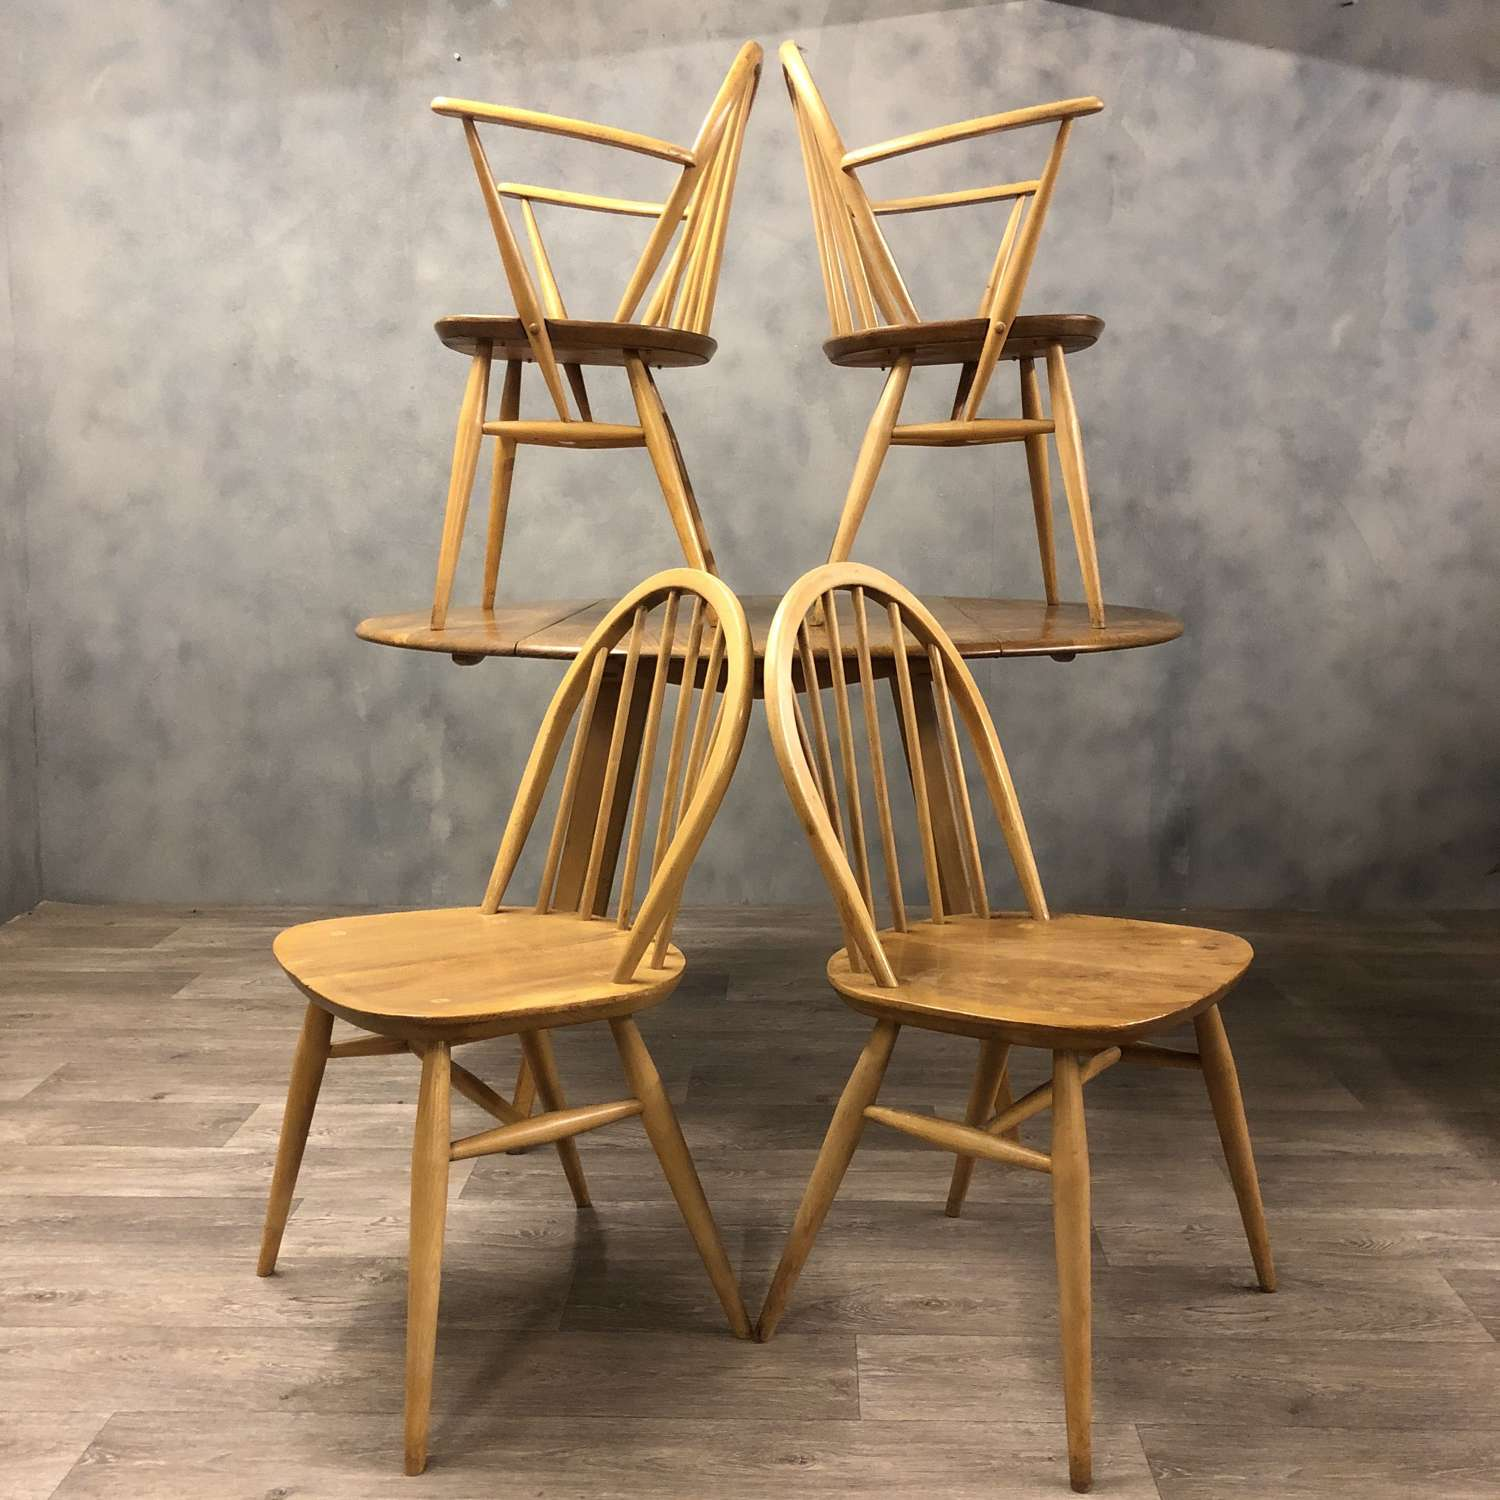 Midcentury Ercol Windsor dining chairs (6) Beech and Elm